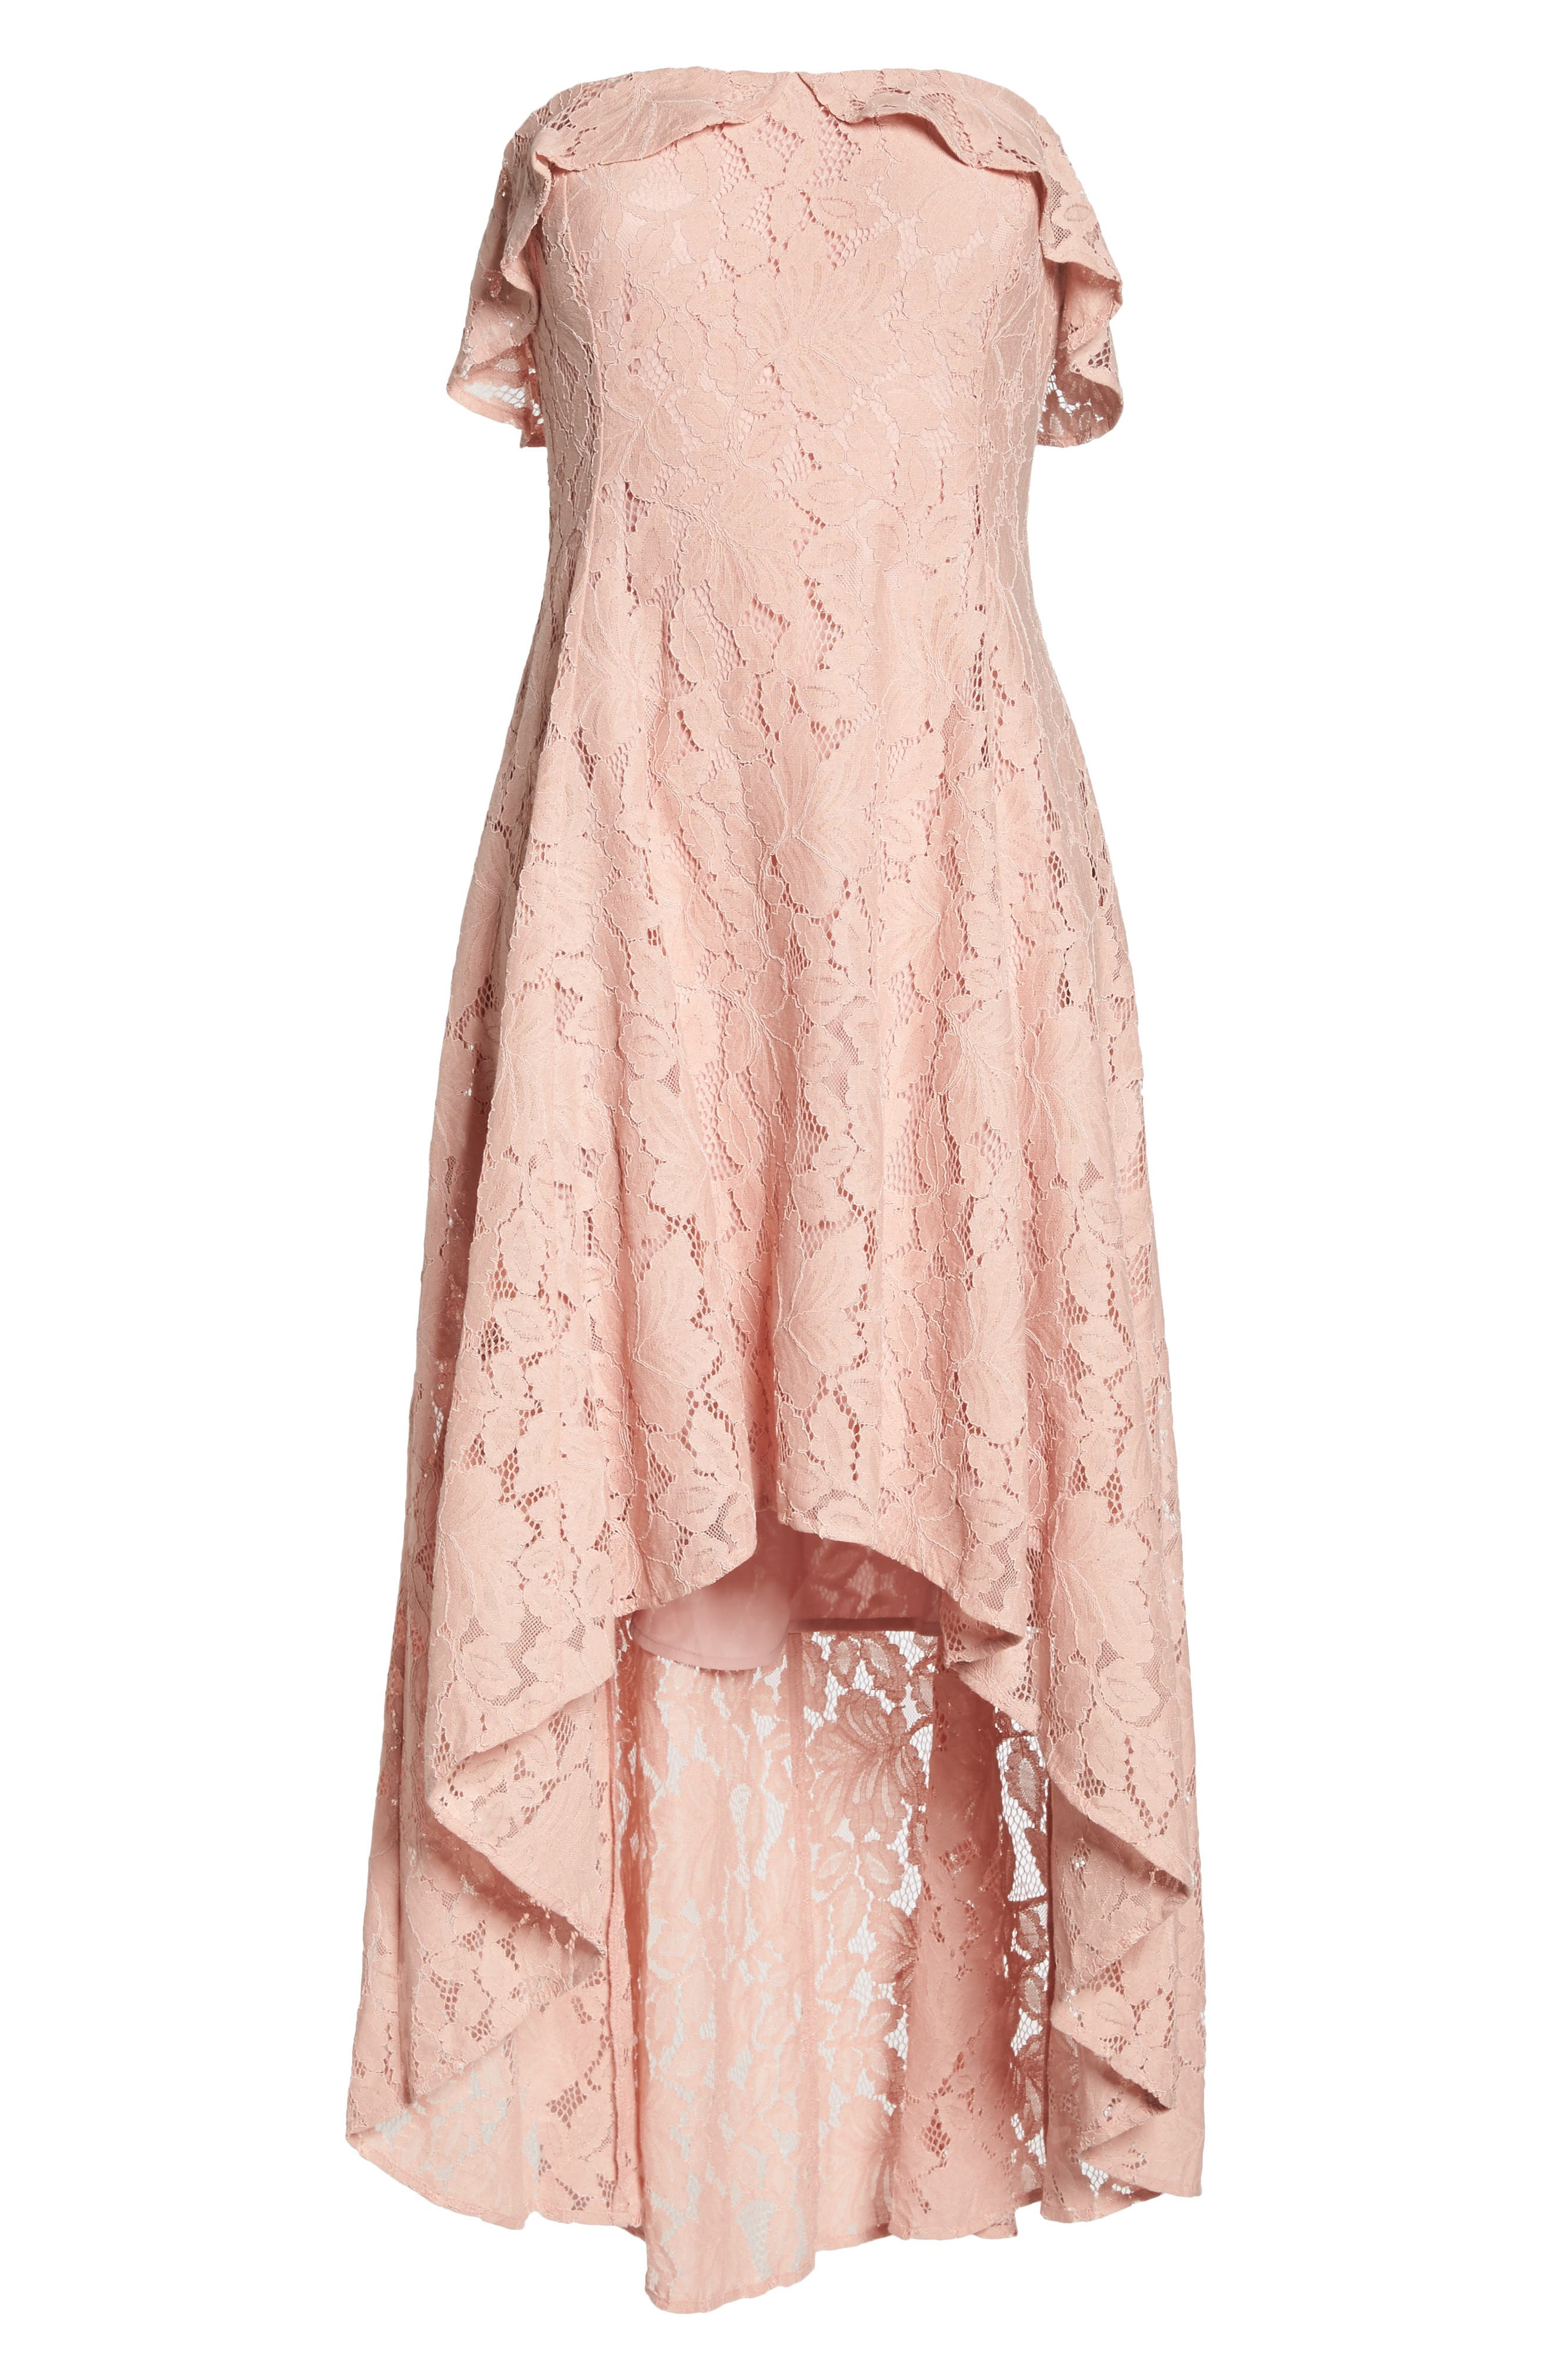 Strapless Lace High/Low Dress,                             Alternate thumbnail 7, color,                             Peach